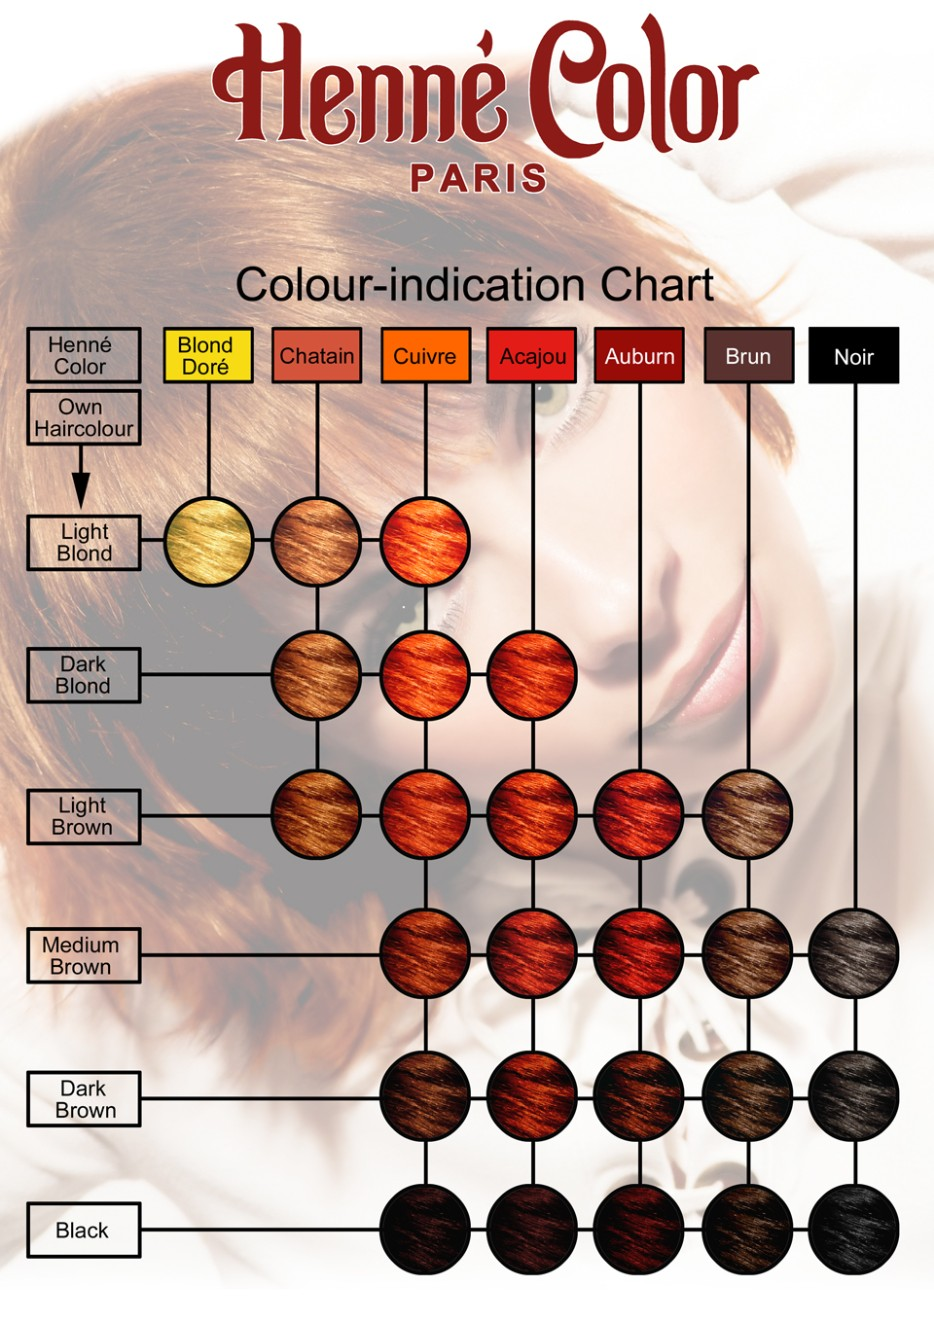 Henn color powder hair colour indication chart henn color